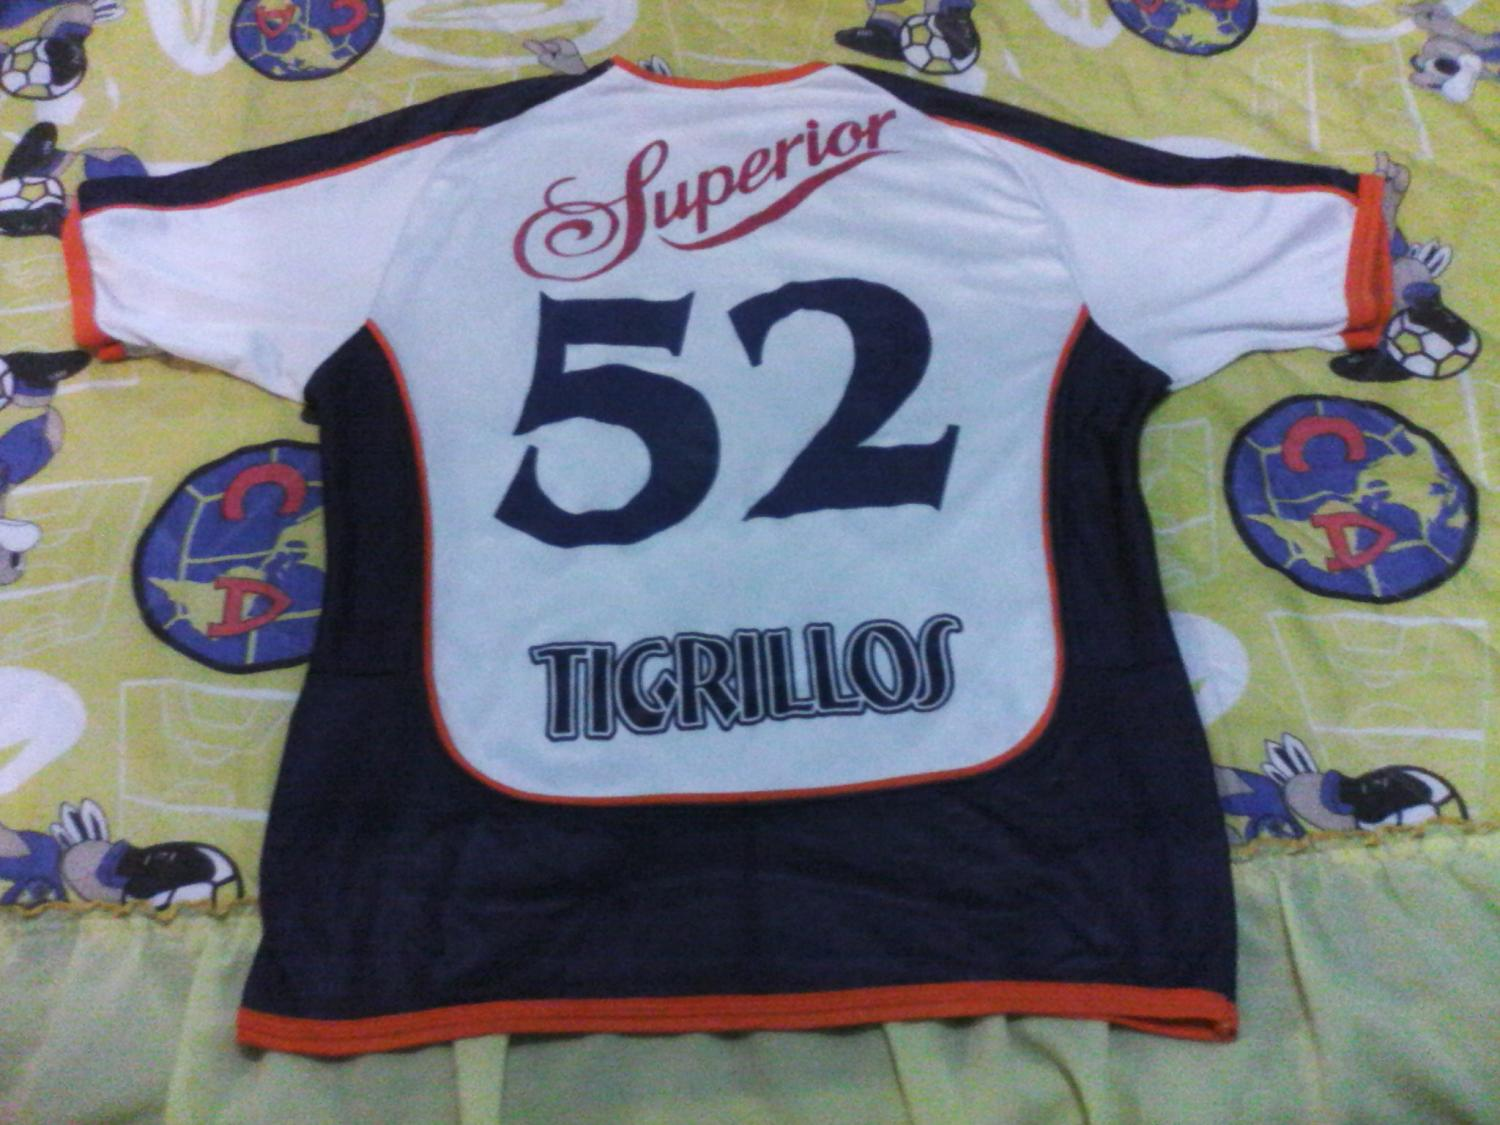 Tigrillos Chetumal Home Camiseta de Fútbol (unknown year)